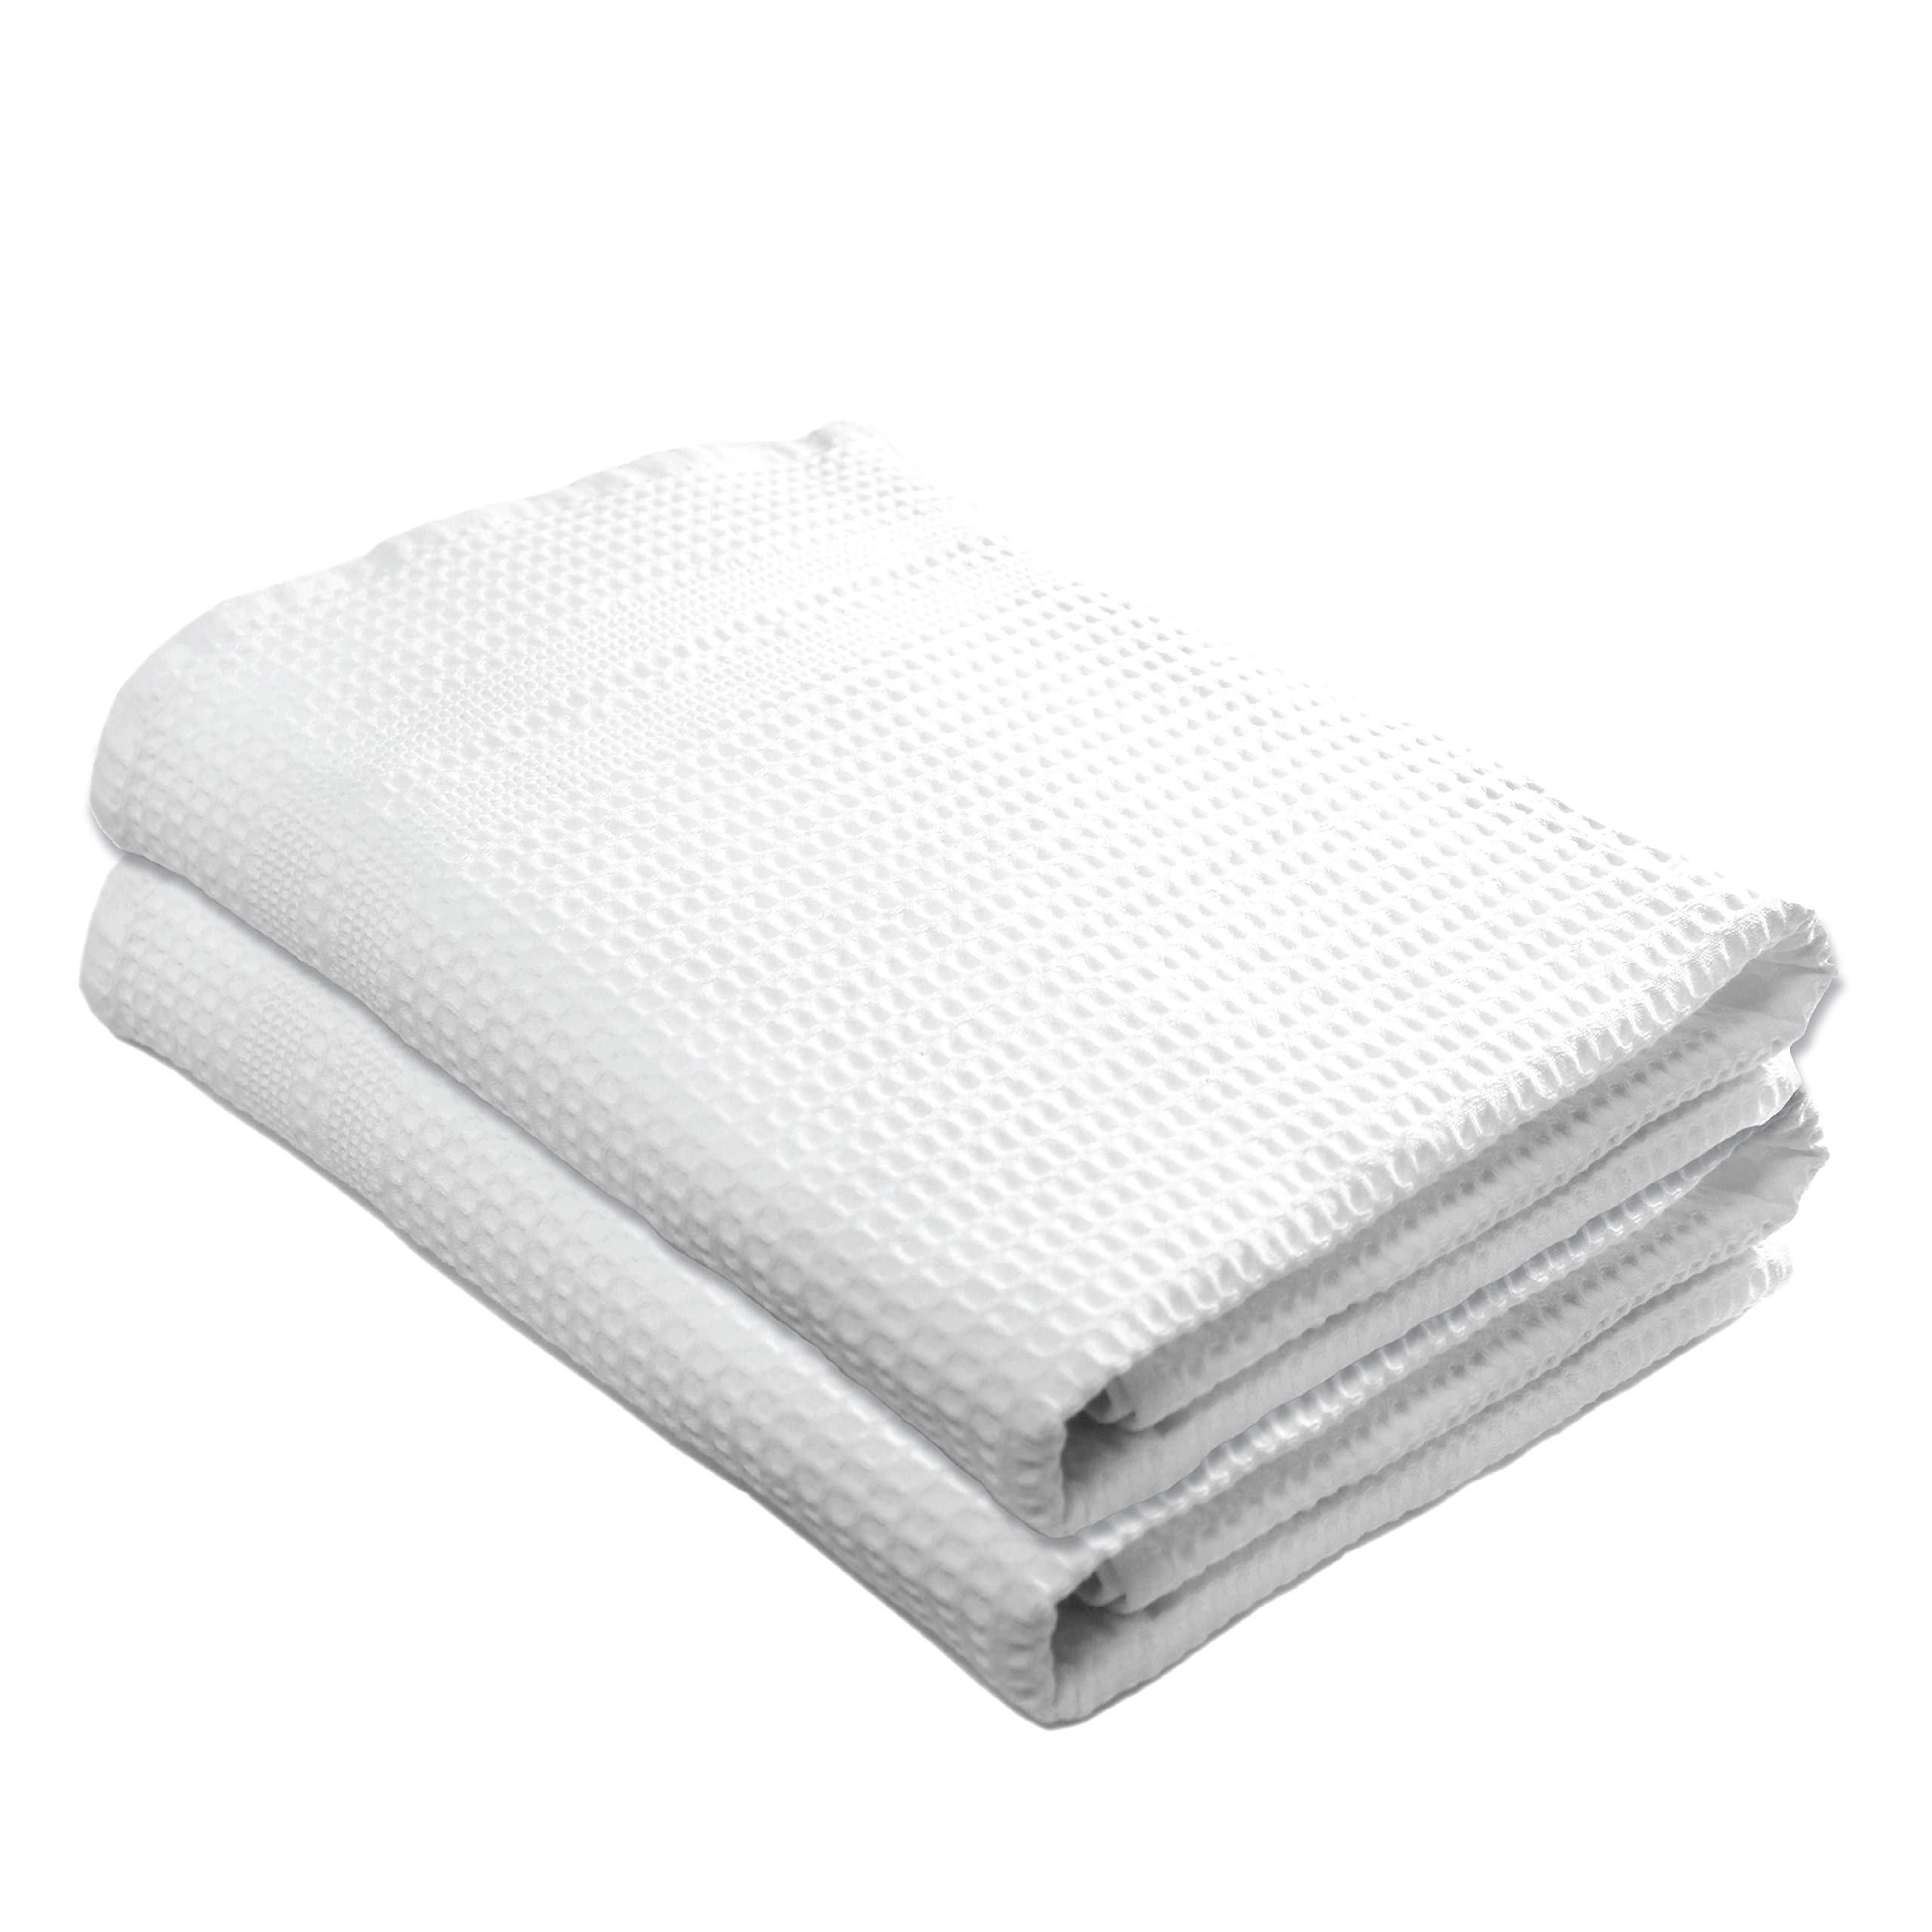 Gilden Tree 100% Natural Cotton Classic Waffle Weave Bath Towel Set of 2 (White)